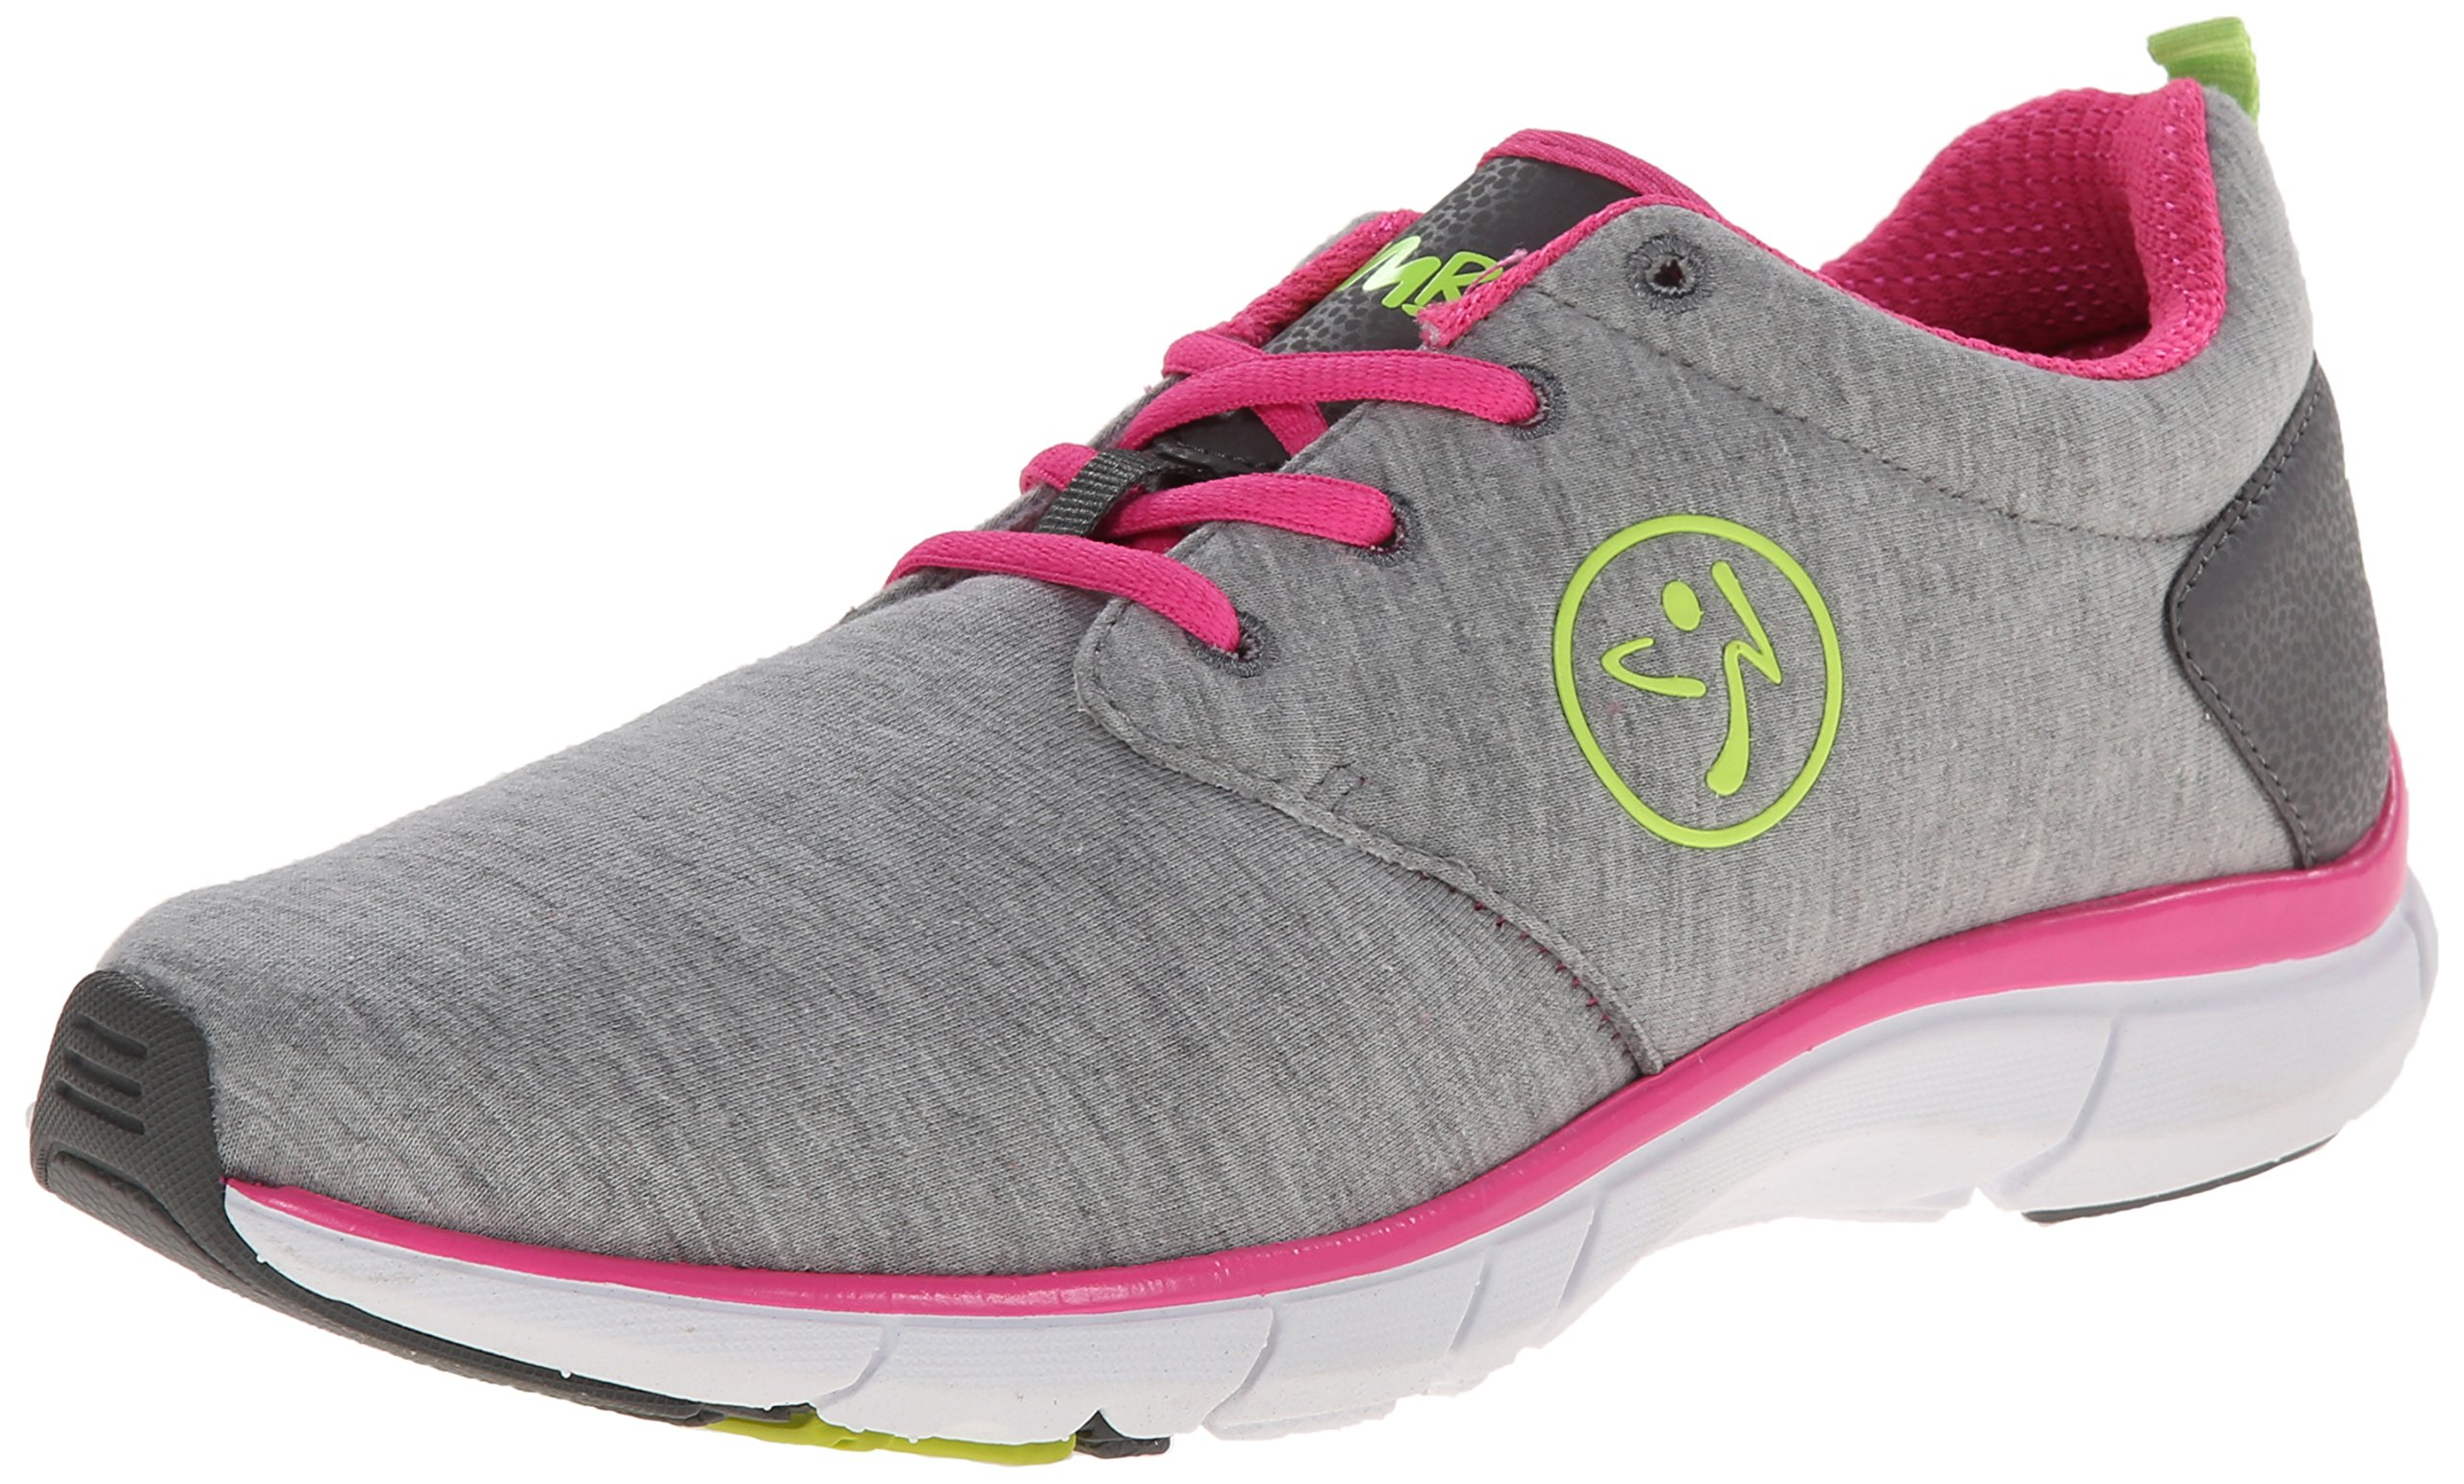 new balance zumba shoes for wide feet